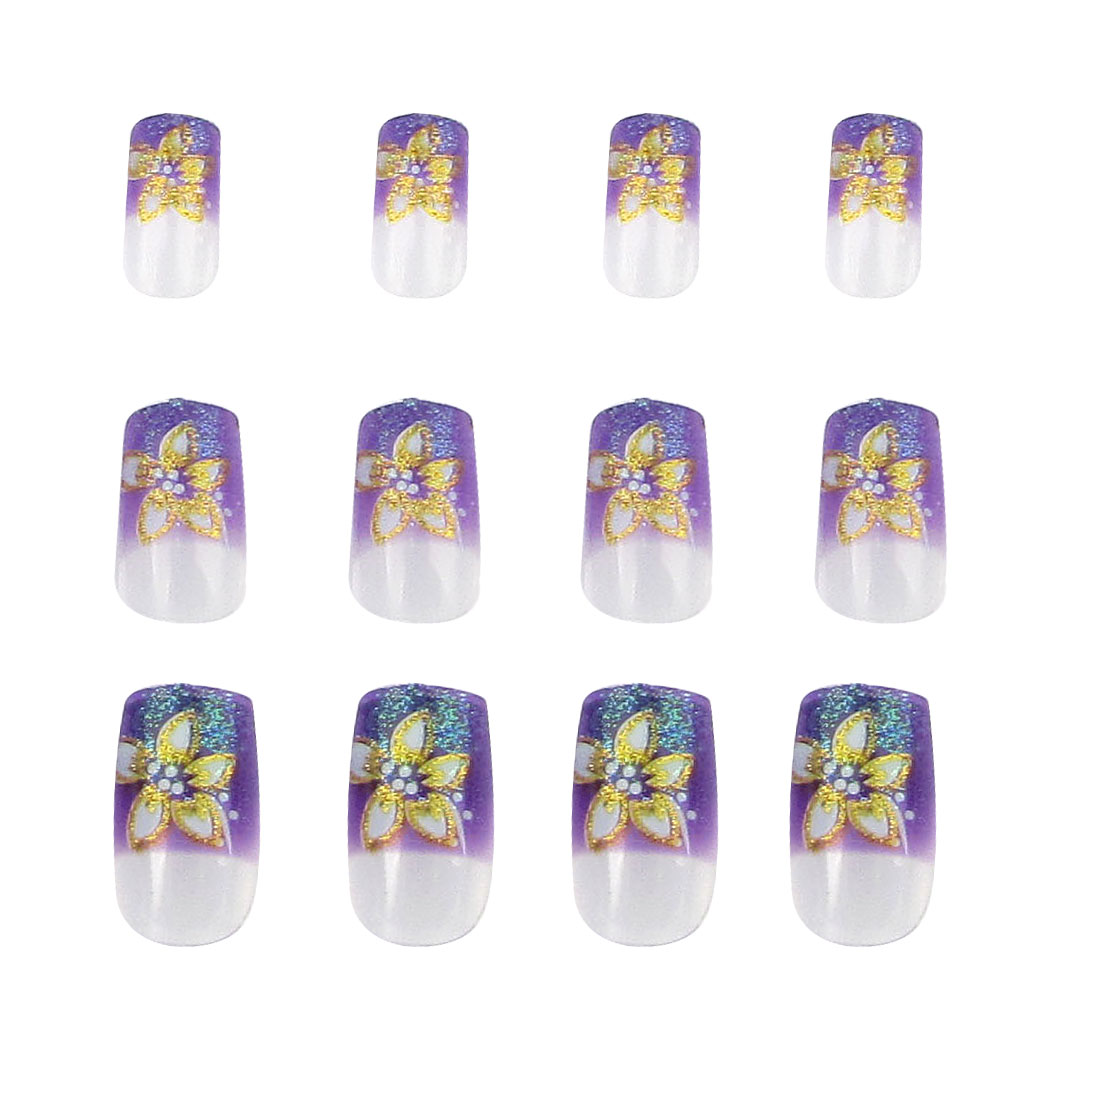 Gold Tone Flower Design Purple Nail Art Fingernail Airbrush Nails 12 Pcs